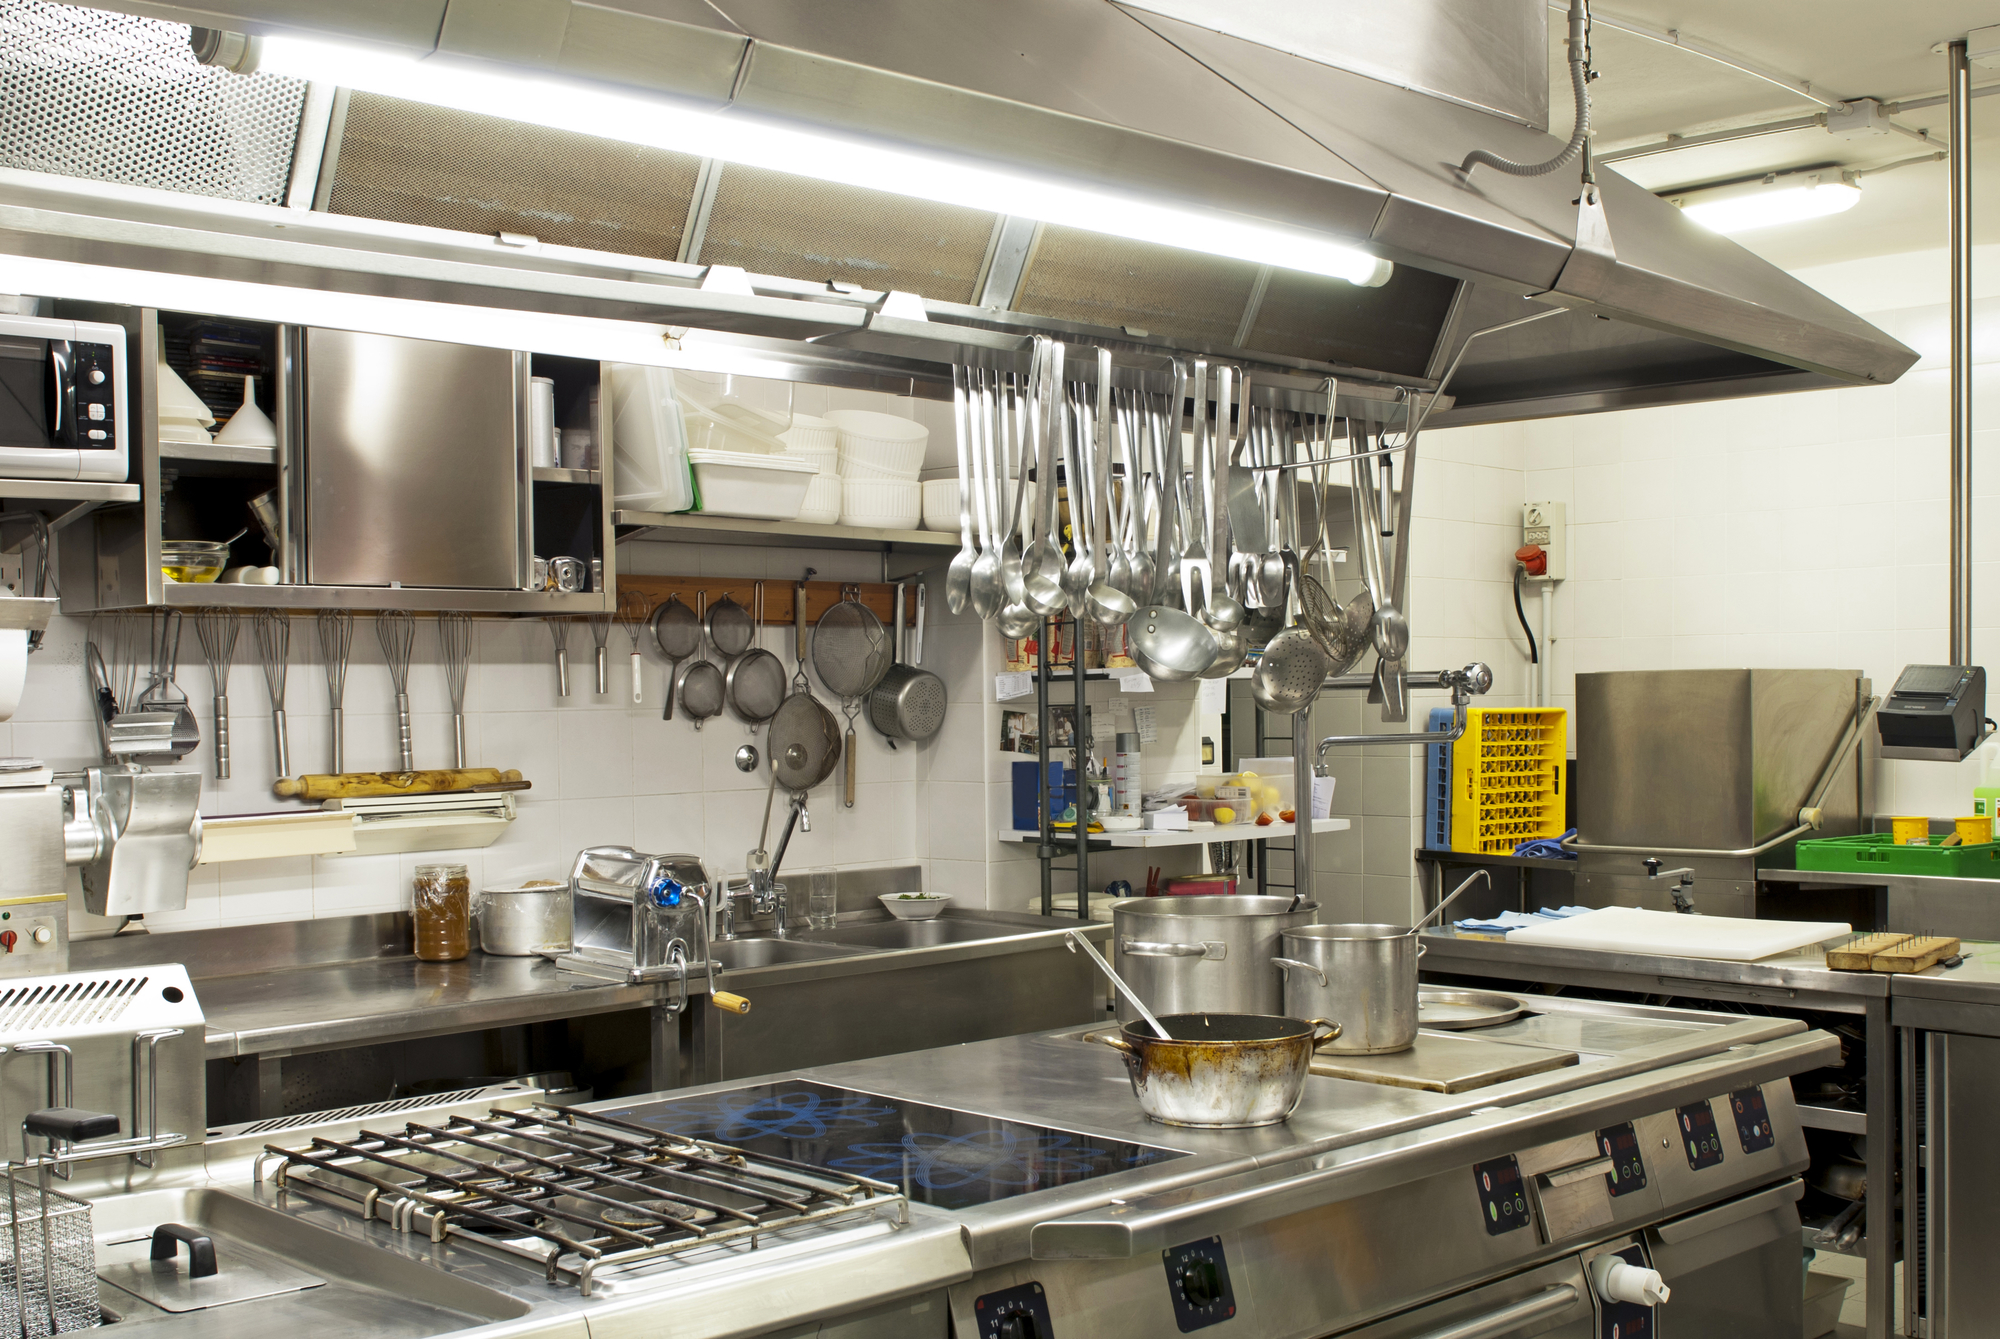 New to running a kitchen here is your restaurant for Equipement hotellerie restauration